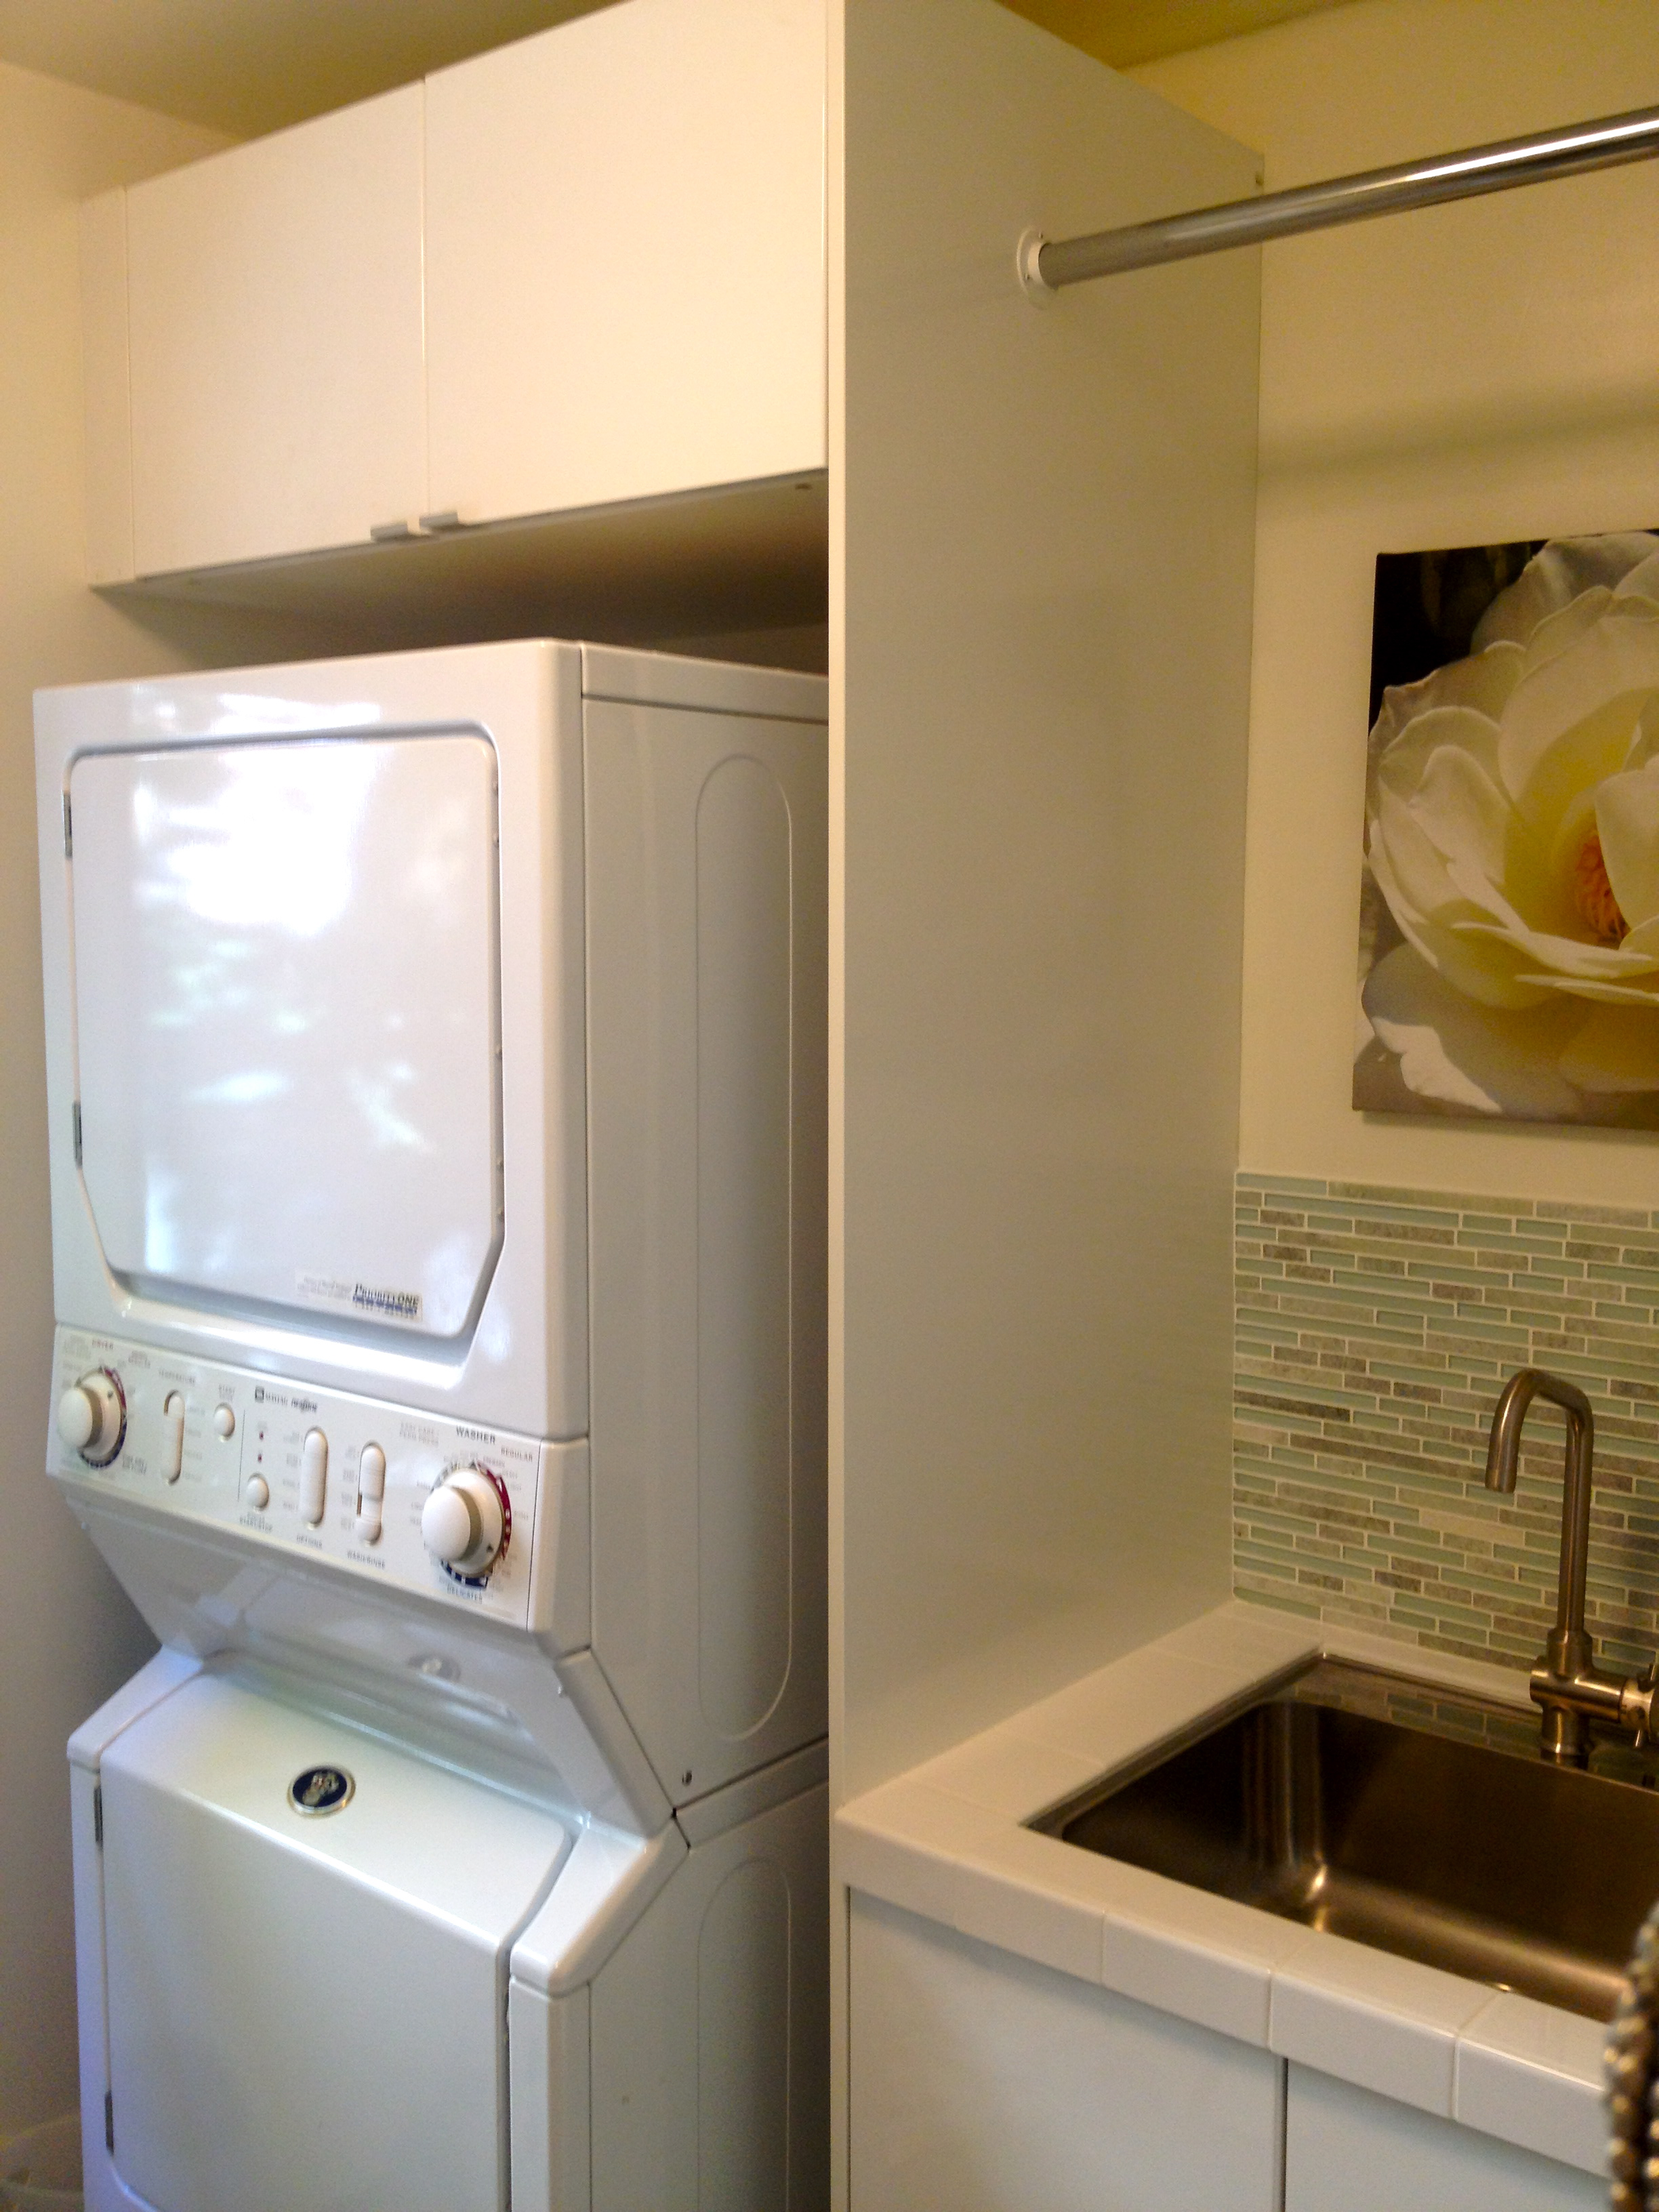 White Stackable Washer And Dryer Near The Sink With Faucet On Laundry Room Ideas